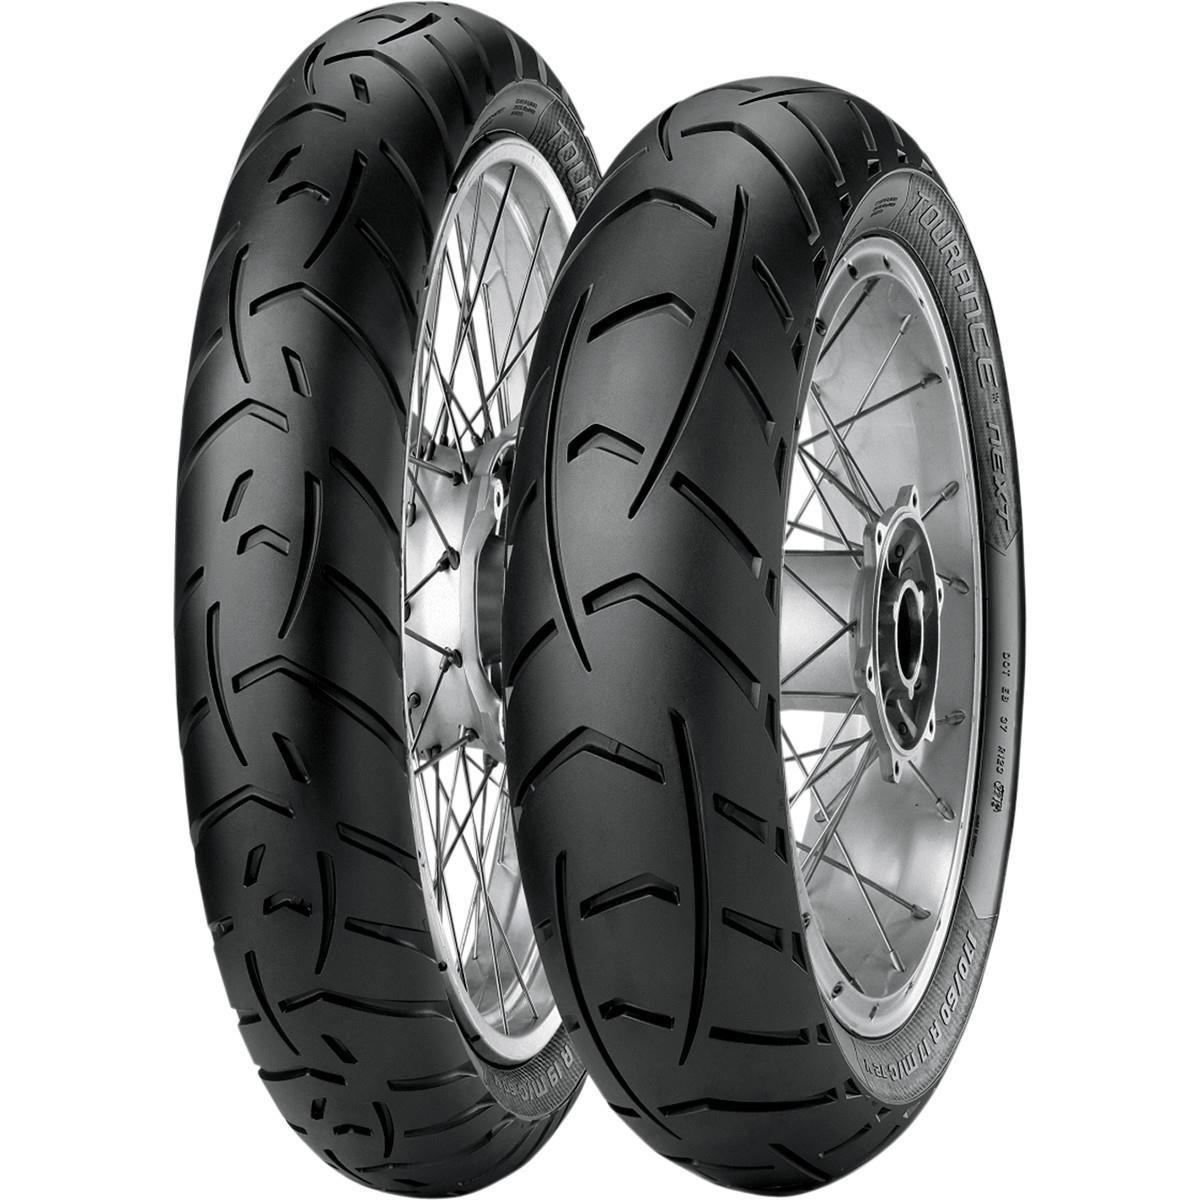 Tire Type: Dual Sport Speed Rating: W Tire Application: Touring Rim Size: 17 Position: Rear Tire Size: 170//60-17 Metzeler Tourance Next Rear Tire Load Rating: 72 Tire Construction: Radial 2439400 170//60ZR-17